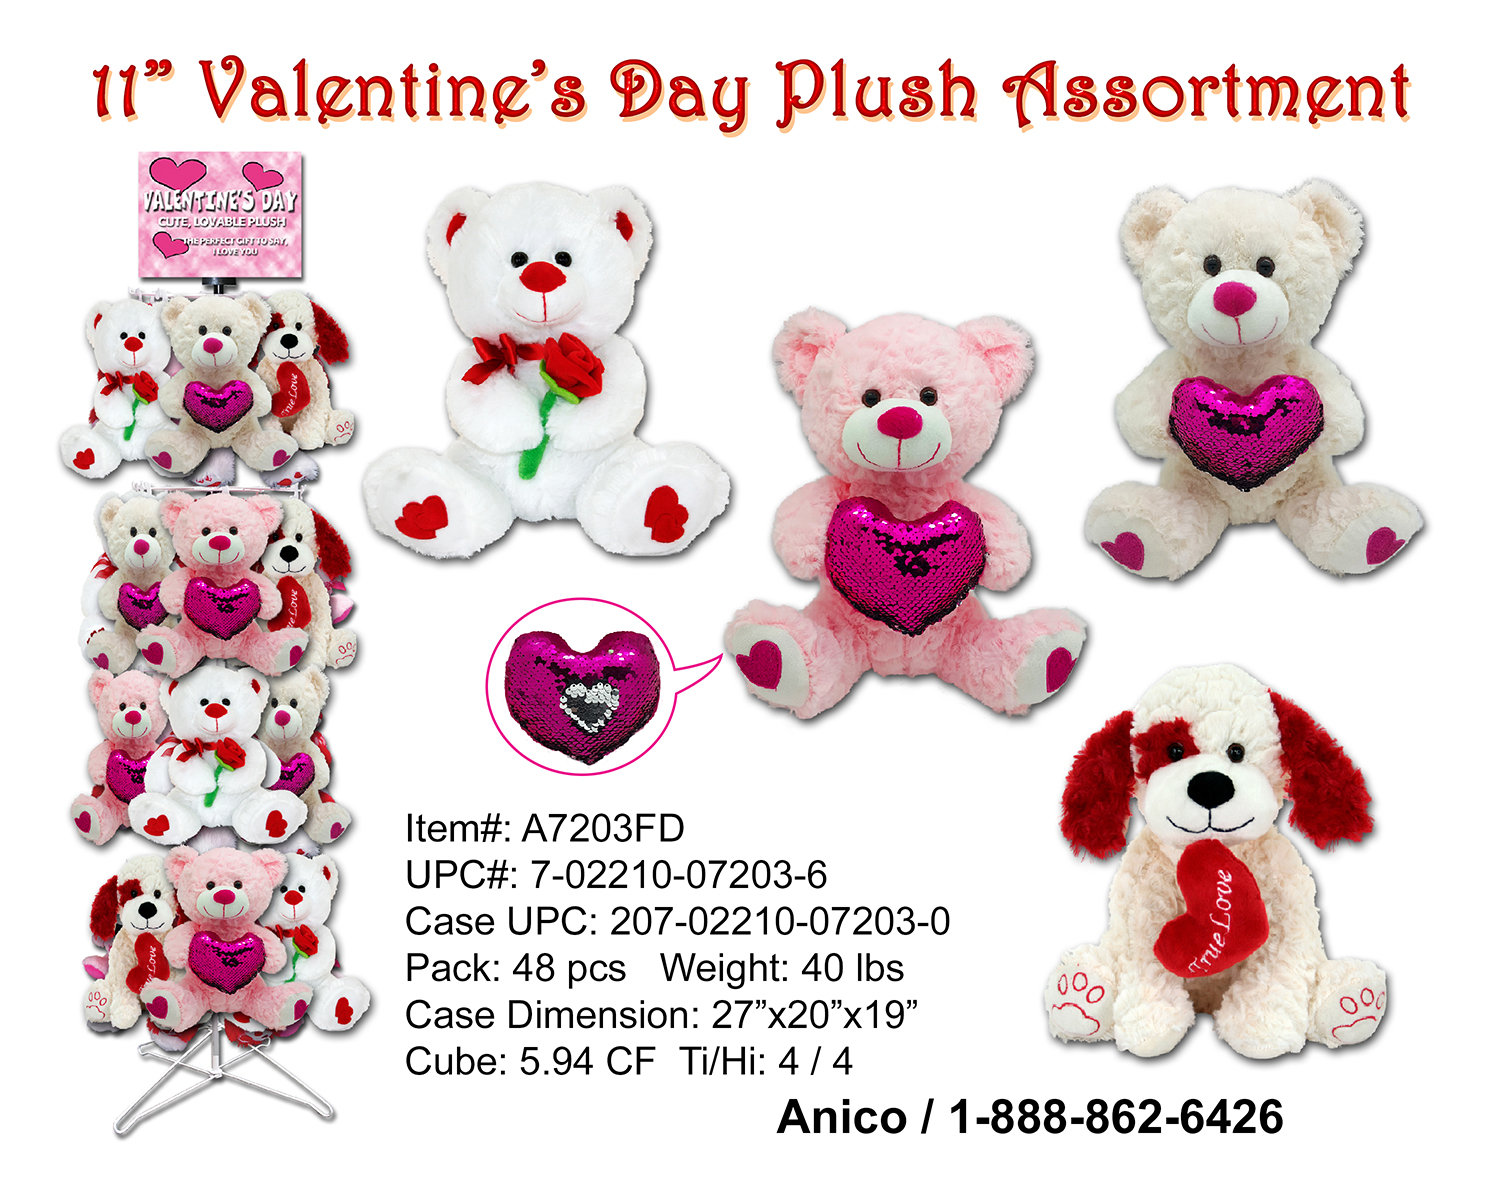 A7203FD Valentine Plush Sheet 021419 cop